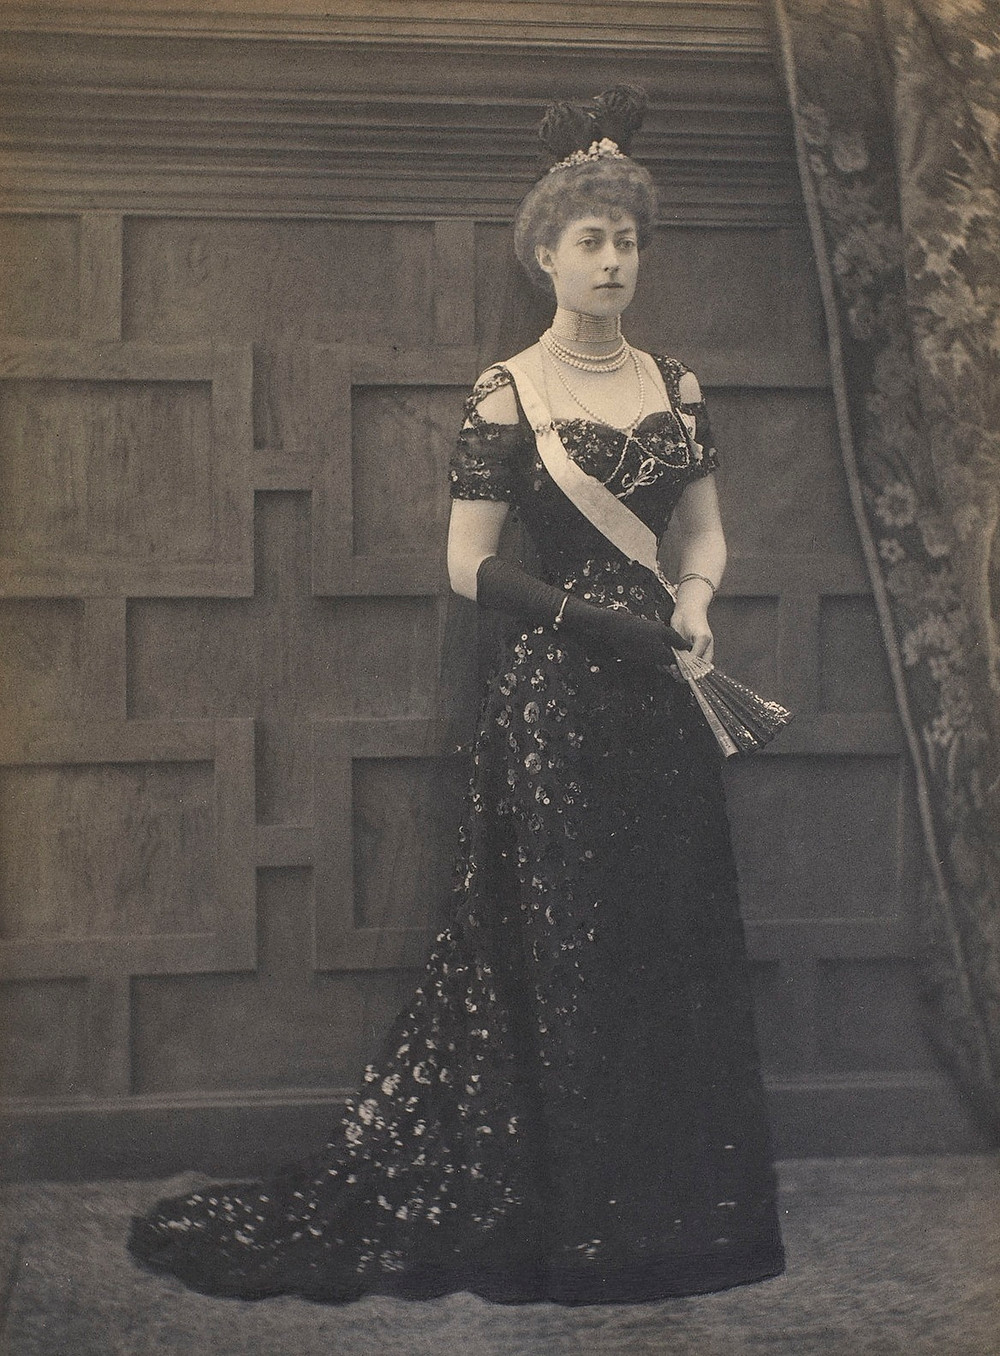 Portrait of Princess Victoria of the United Kingdom, and daughter of King Edward VII & Queen Alexandra.